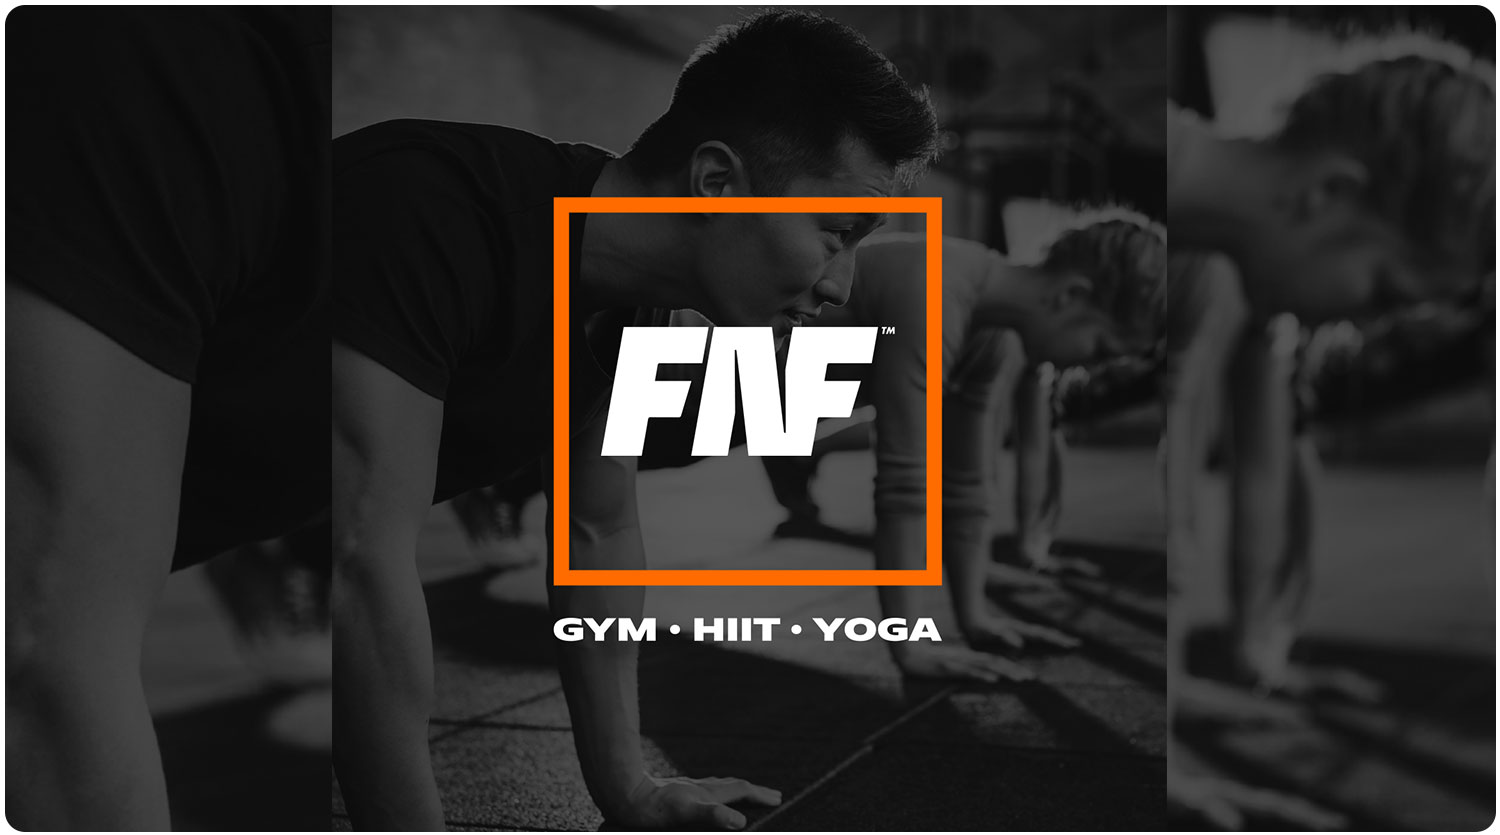 87% off – Experience Your Fitness, Your Way. It's only $14 for for 14 days unlimited Gym, HIIT and Yoga at Fit n Fast Westfield Sydney. Whether you are a new, a HIIT junkie or a Yogi, experience your workout your way. Normally $104.90 Save $90.90